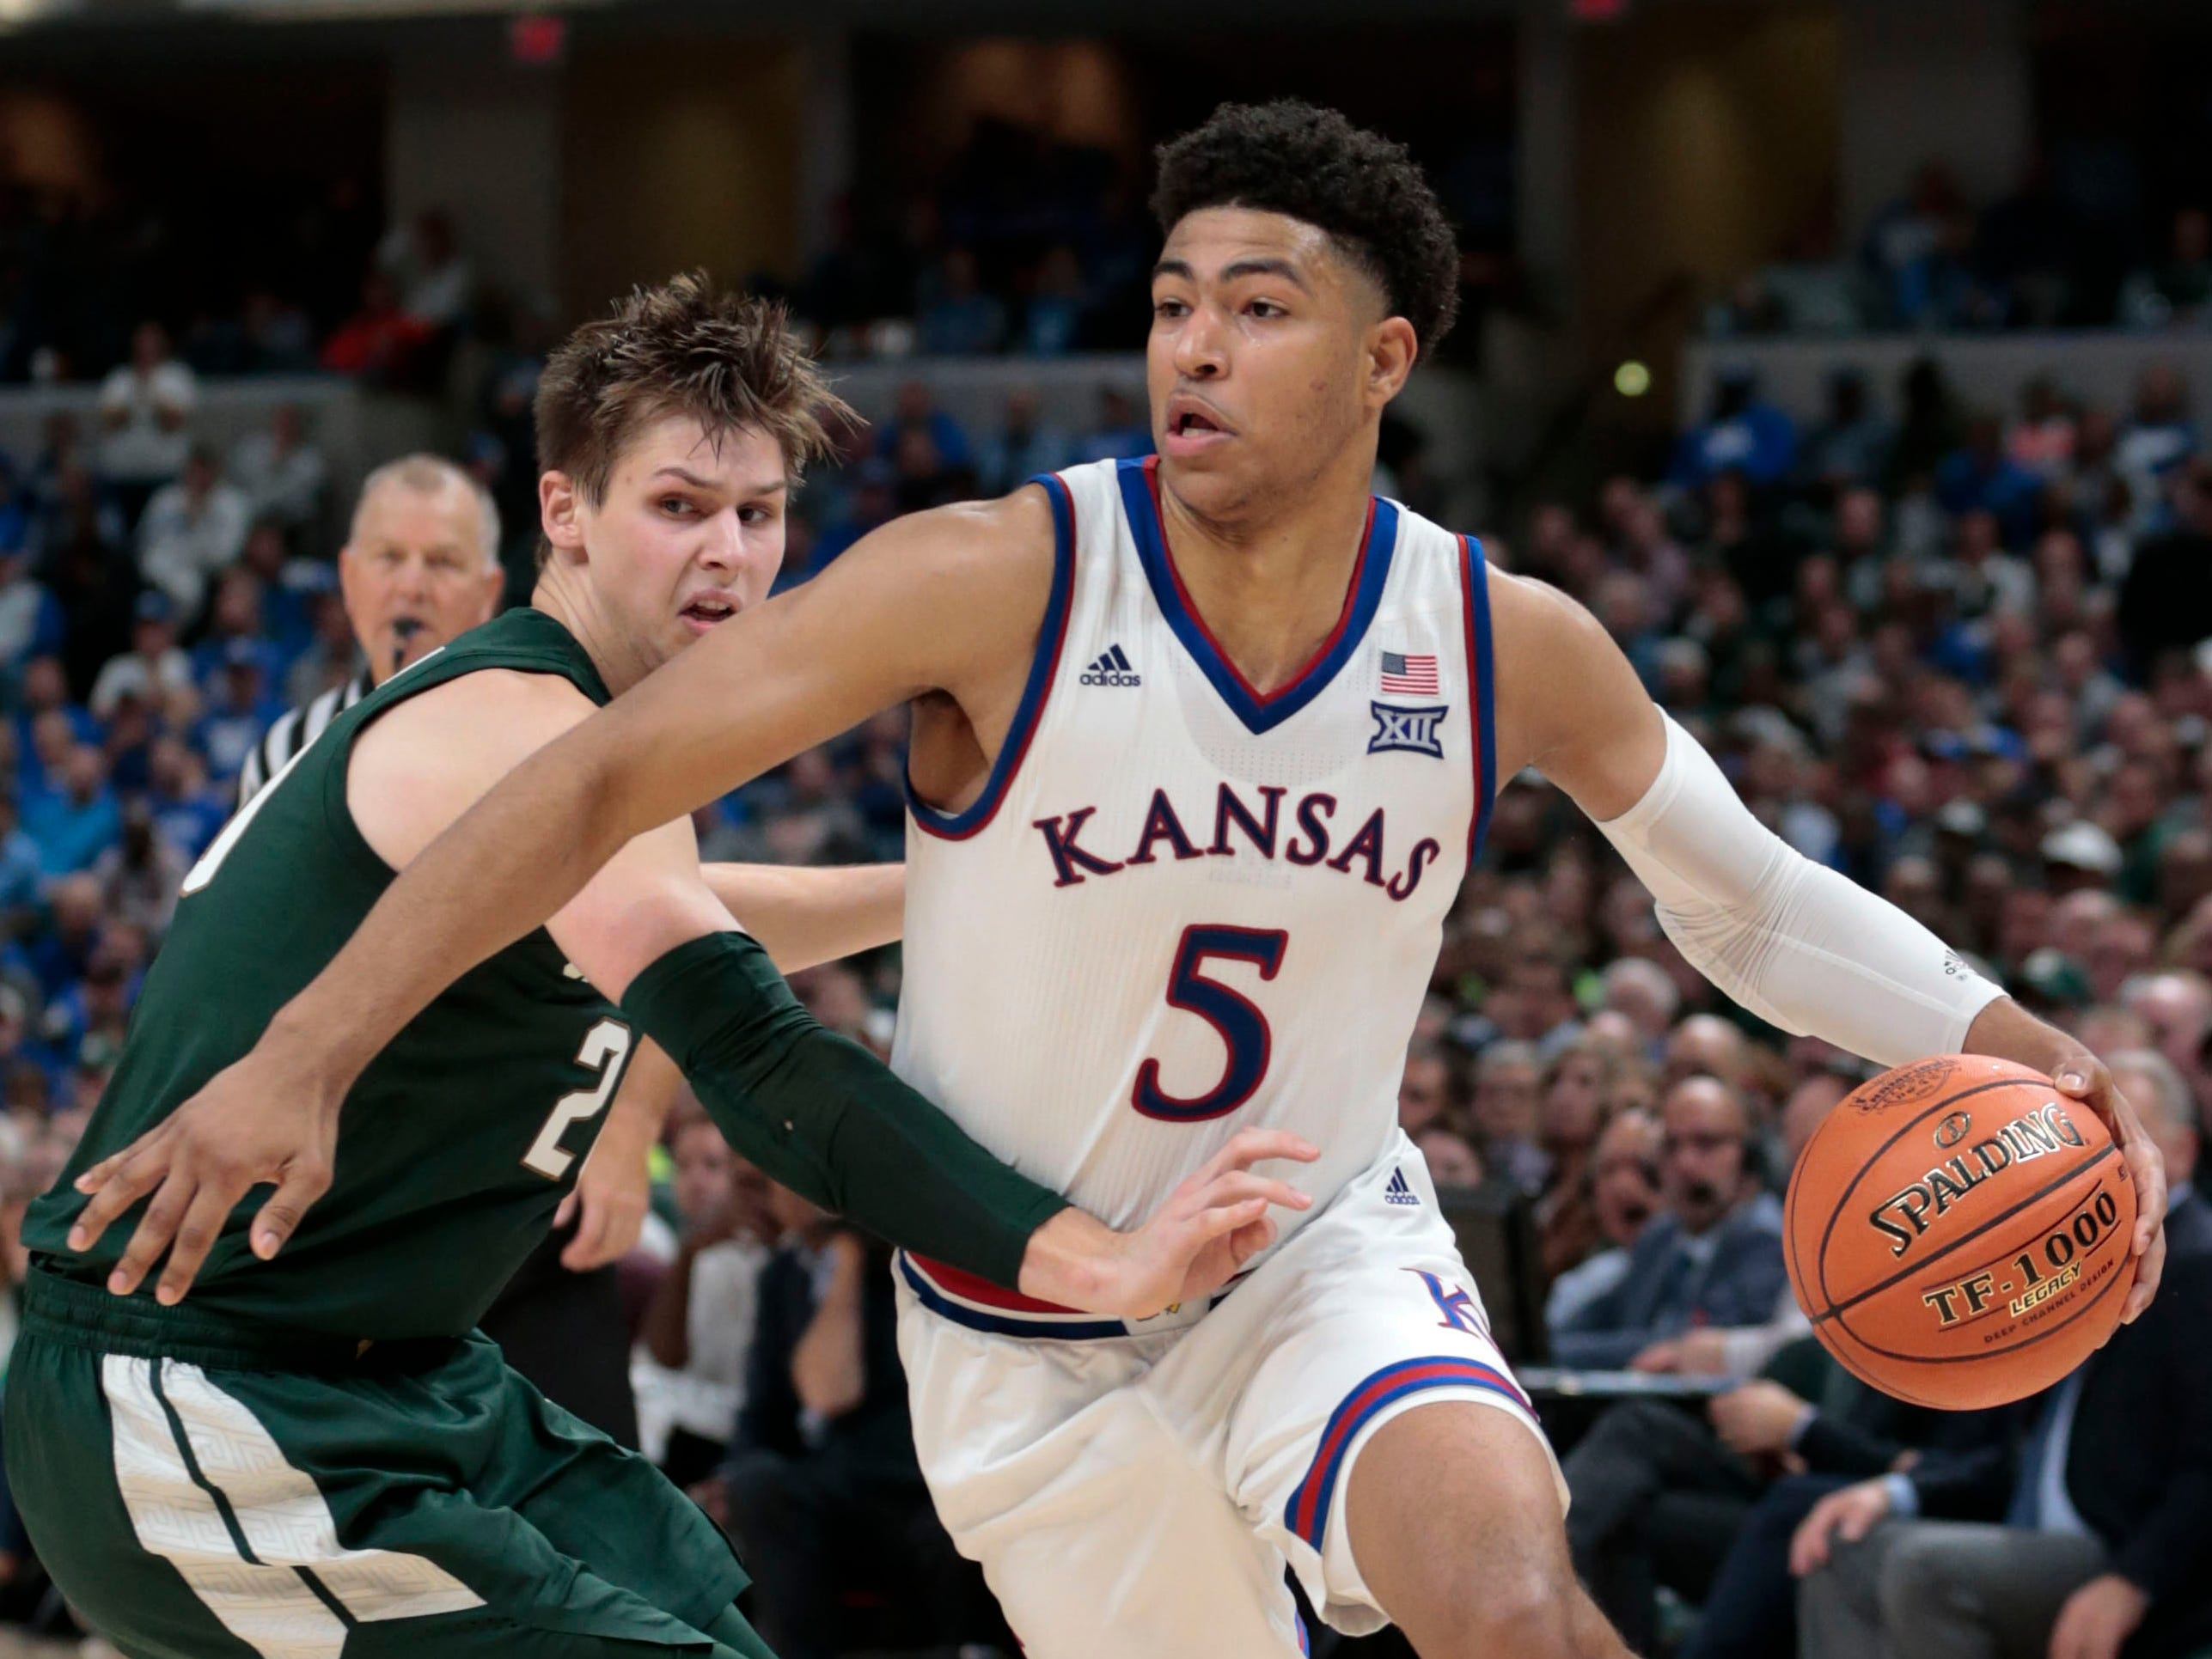 Kansas guard Quentin Grimes (5) goes around Michigan State guard Matt McQuaid (20) in the second half of an NCAA college basketball game at the Champions Classic in Indianapolis on Tuesday, Nov. 6, 2018. Kansas won 92-87.